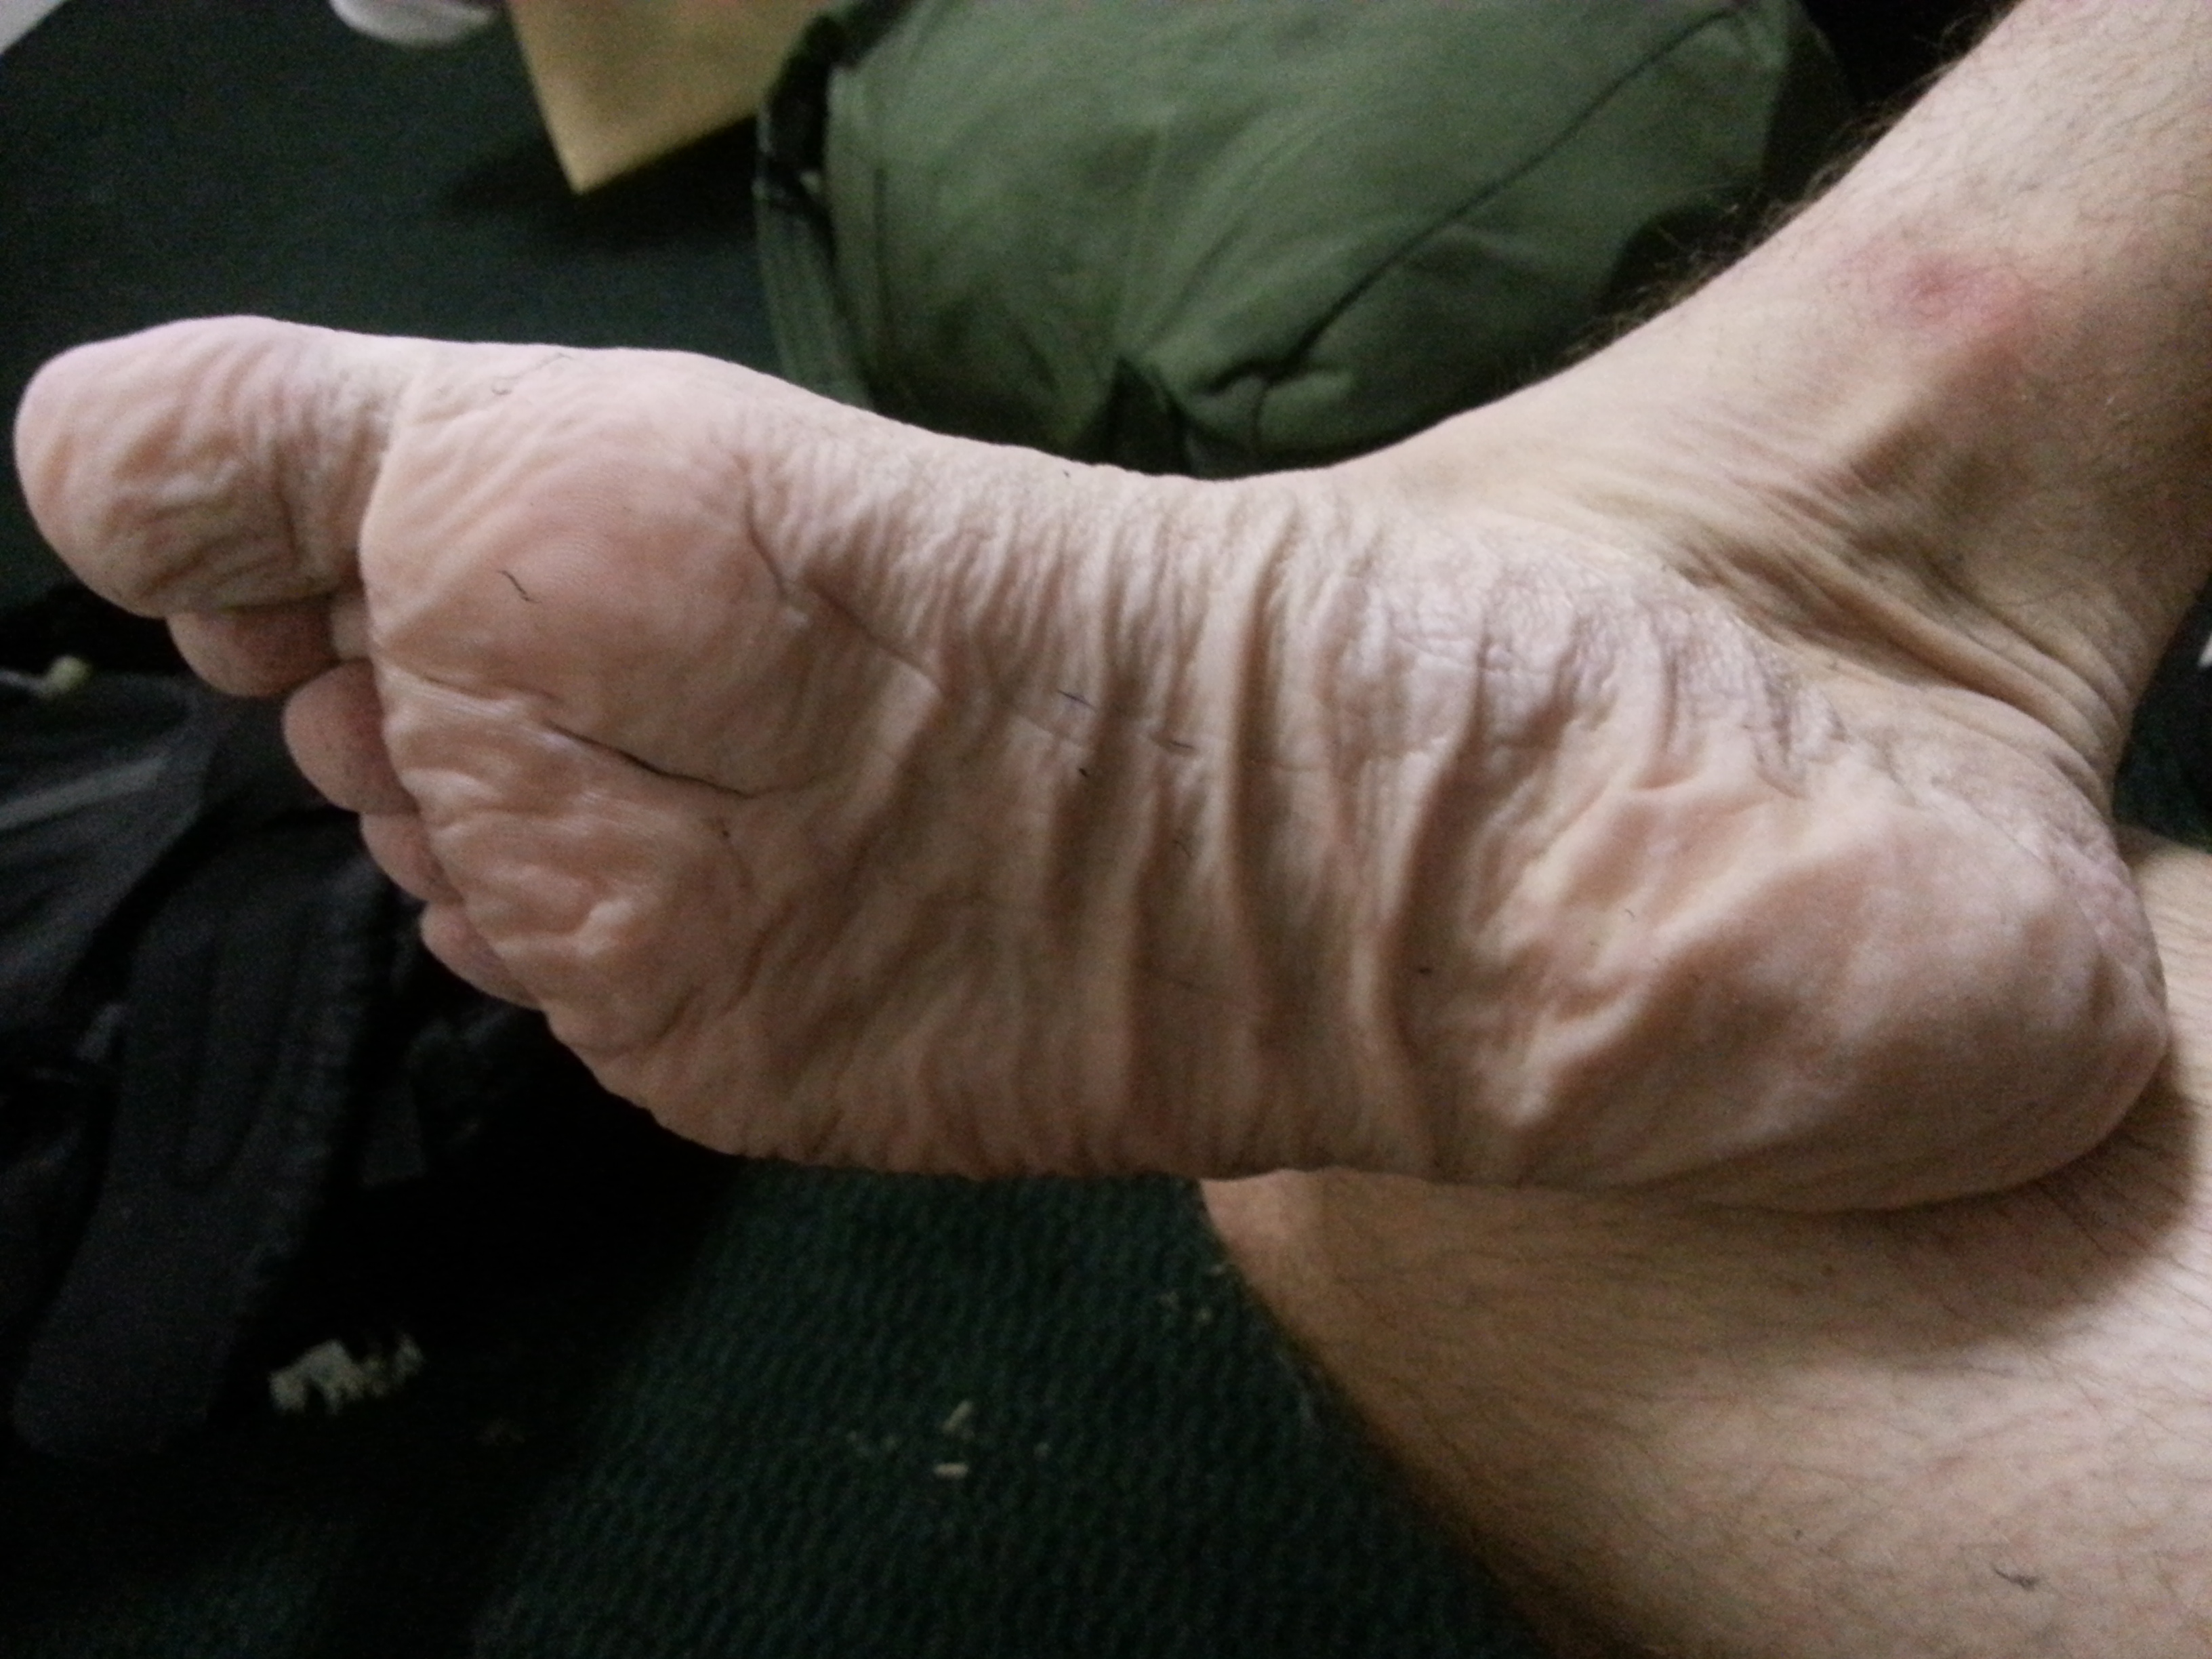 My foot after all day in a wet boot